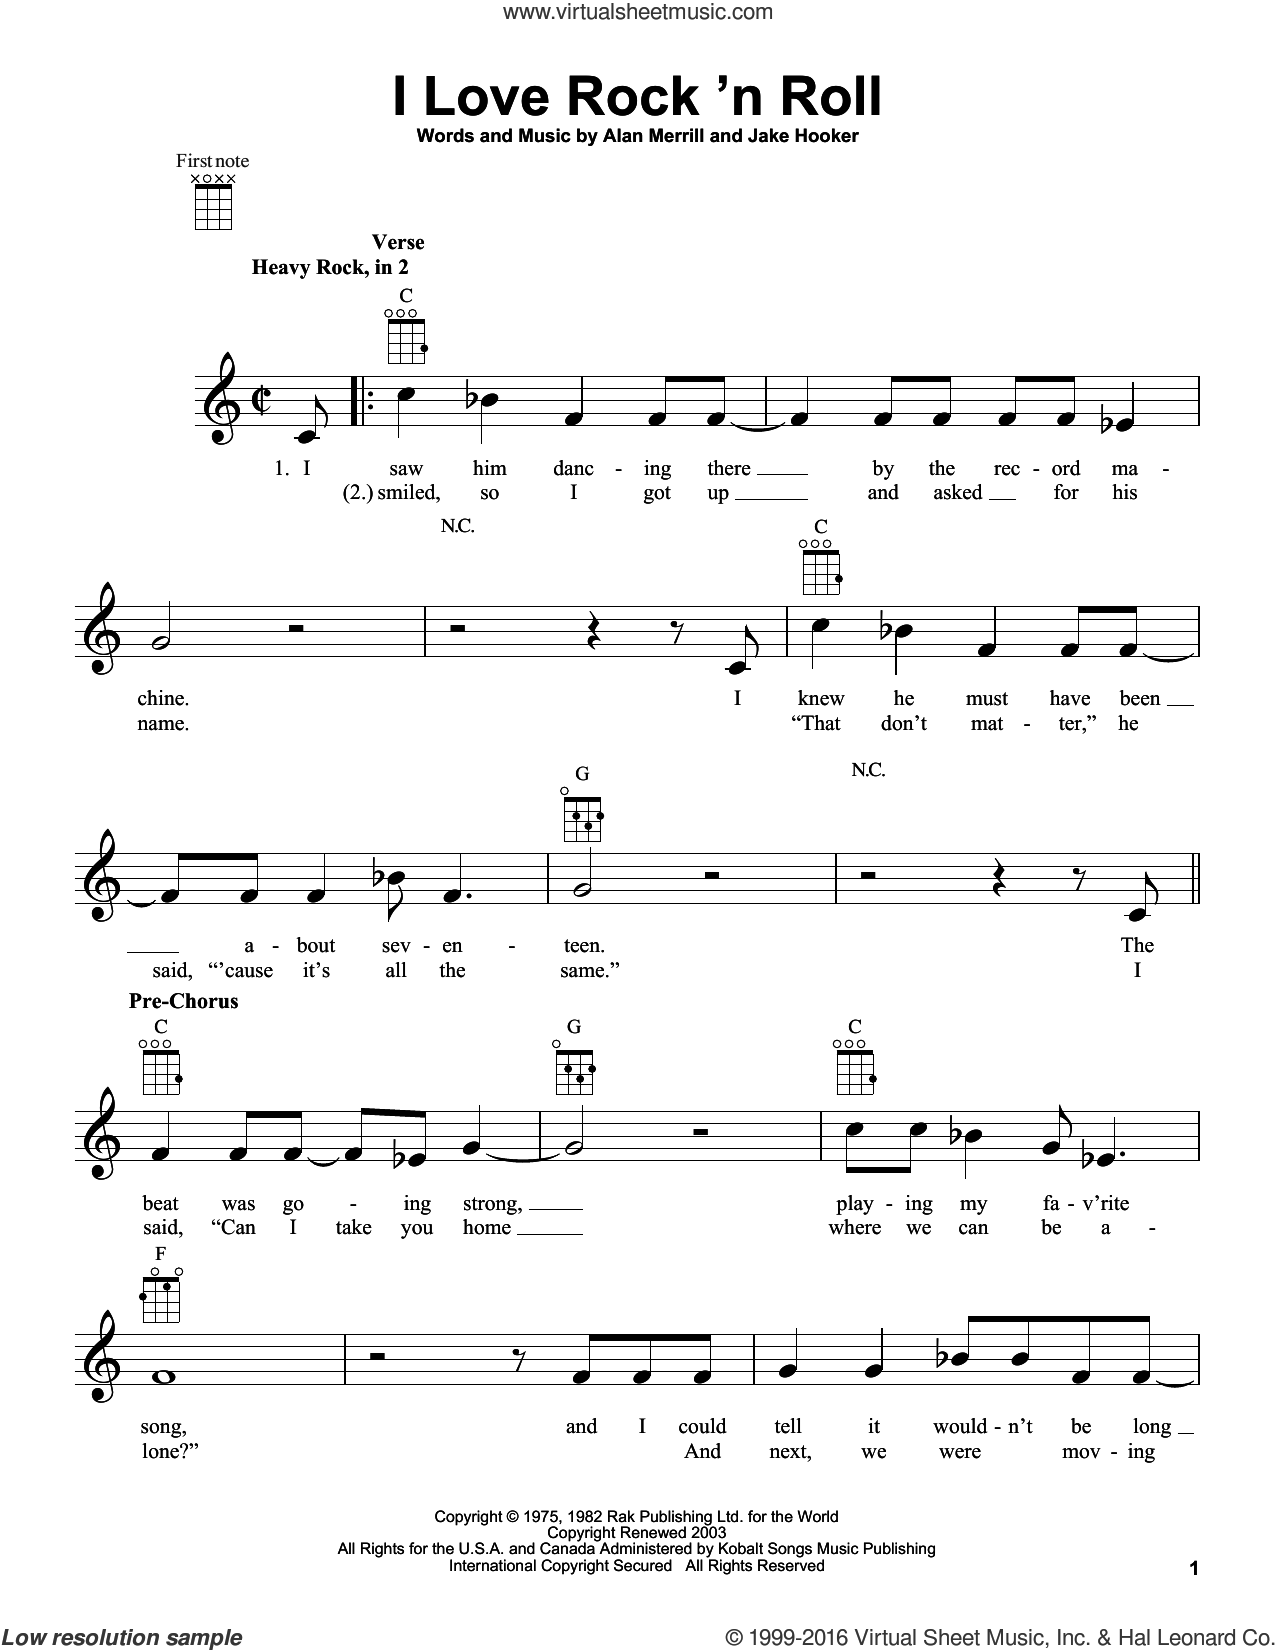 I Love Rock 'N Roll sheet music for ukulele by Jake Hooker and Joan Jett & The Blackhearts. Score Image Preview.